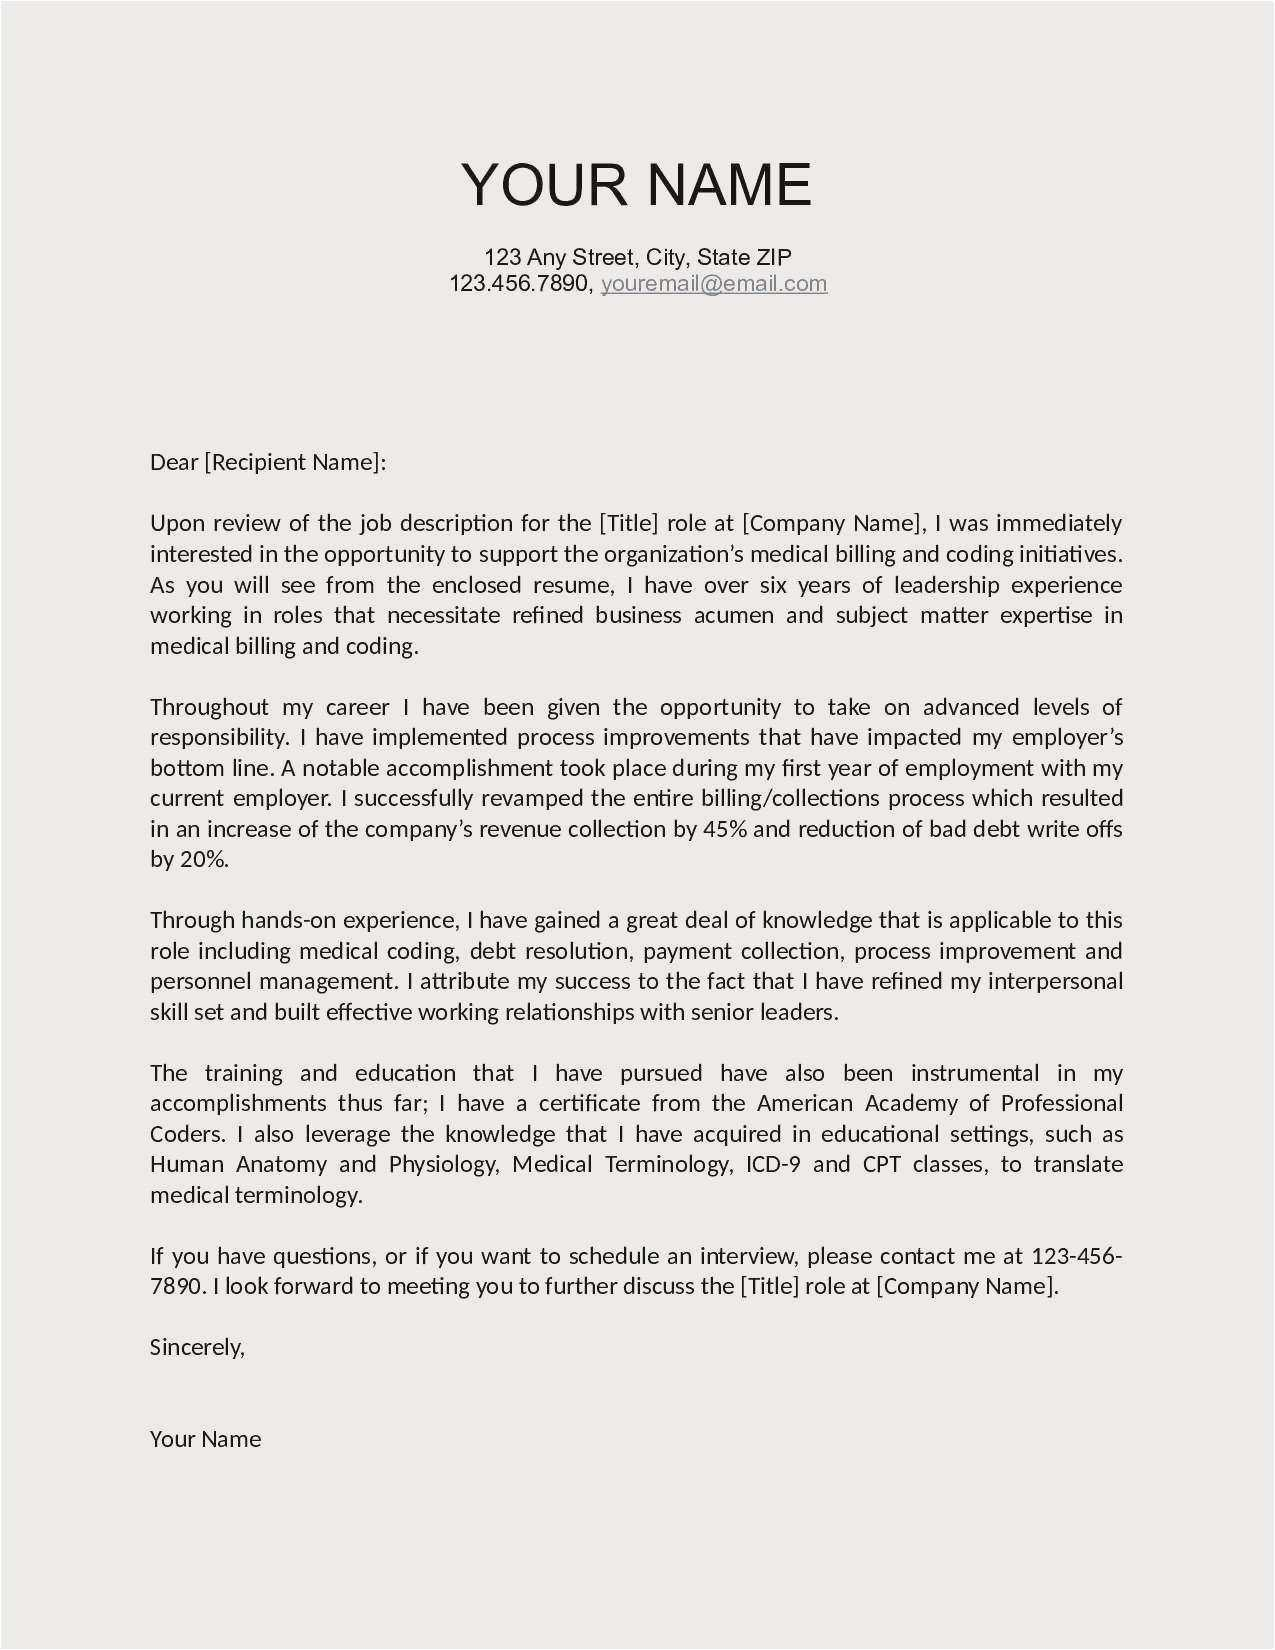 Employer Name Example - 25 Free Email Cover Letter Sample Free Download